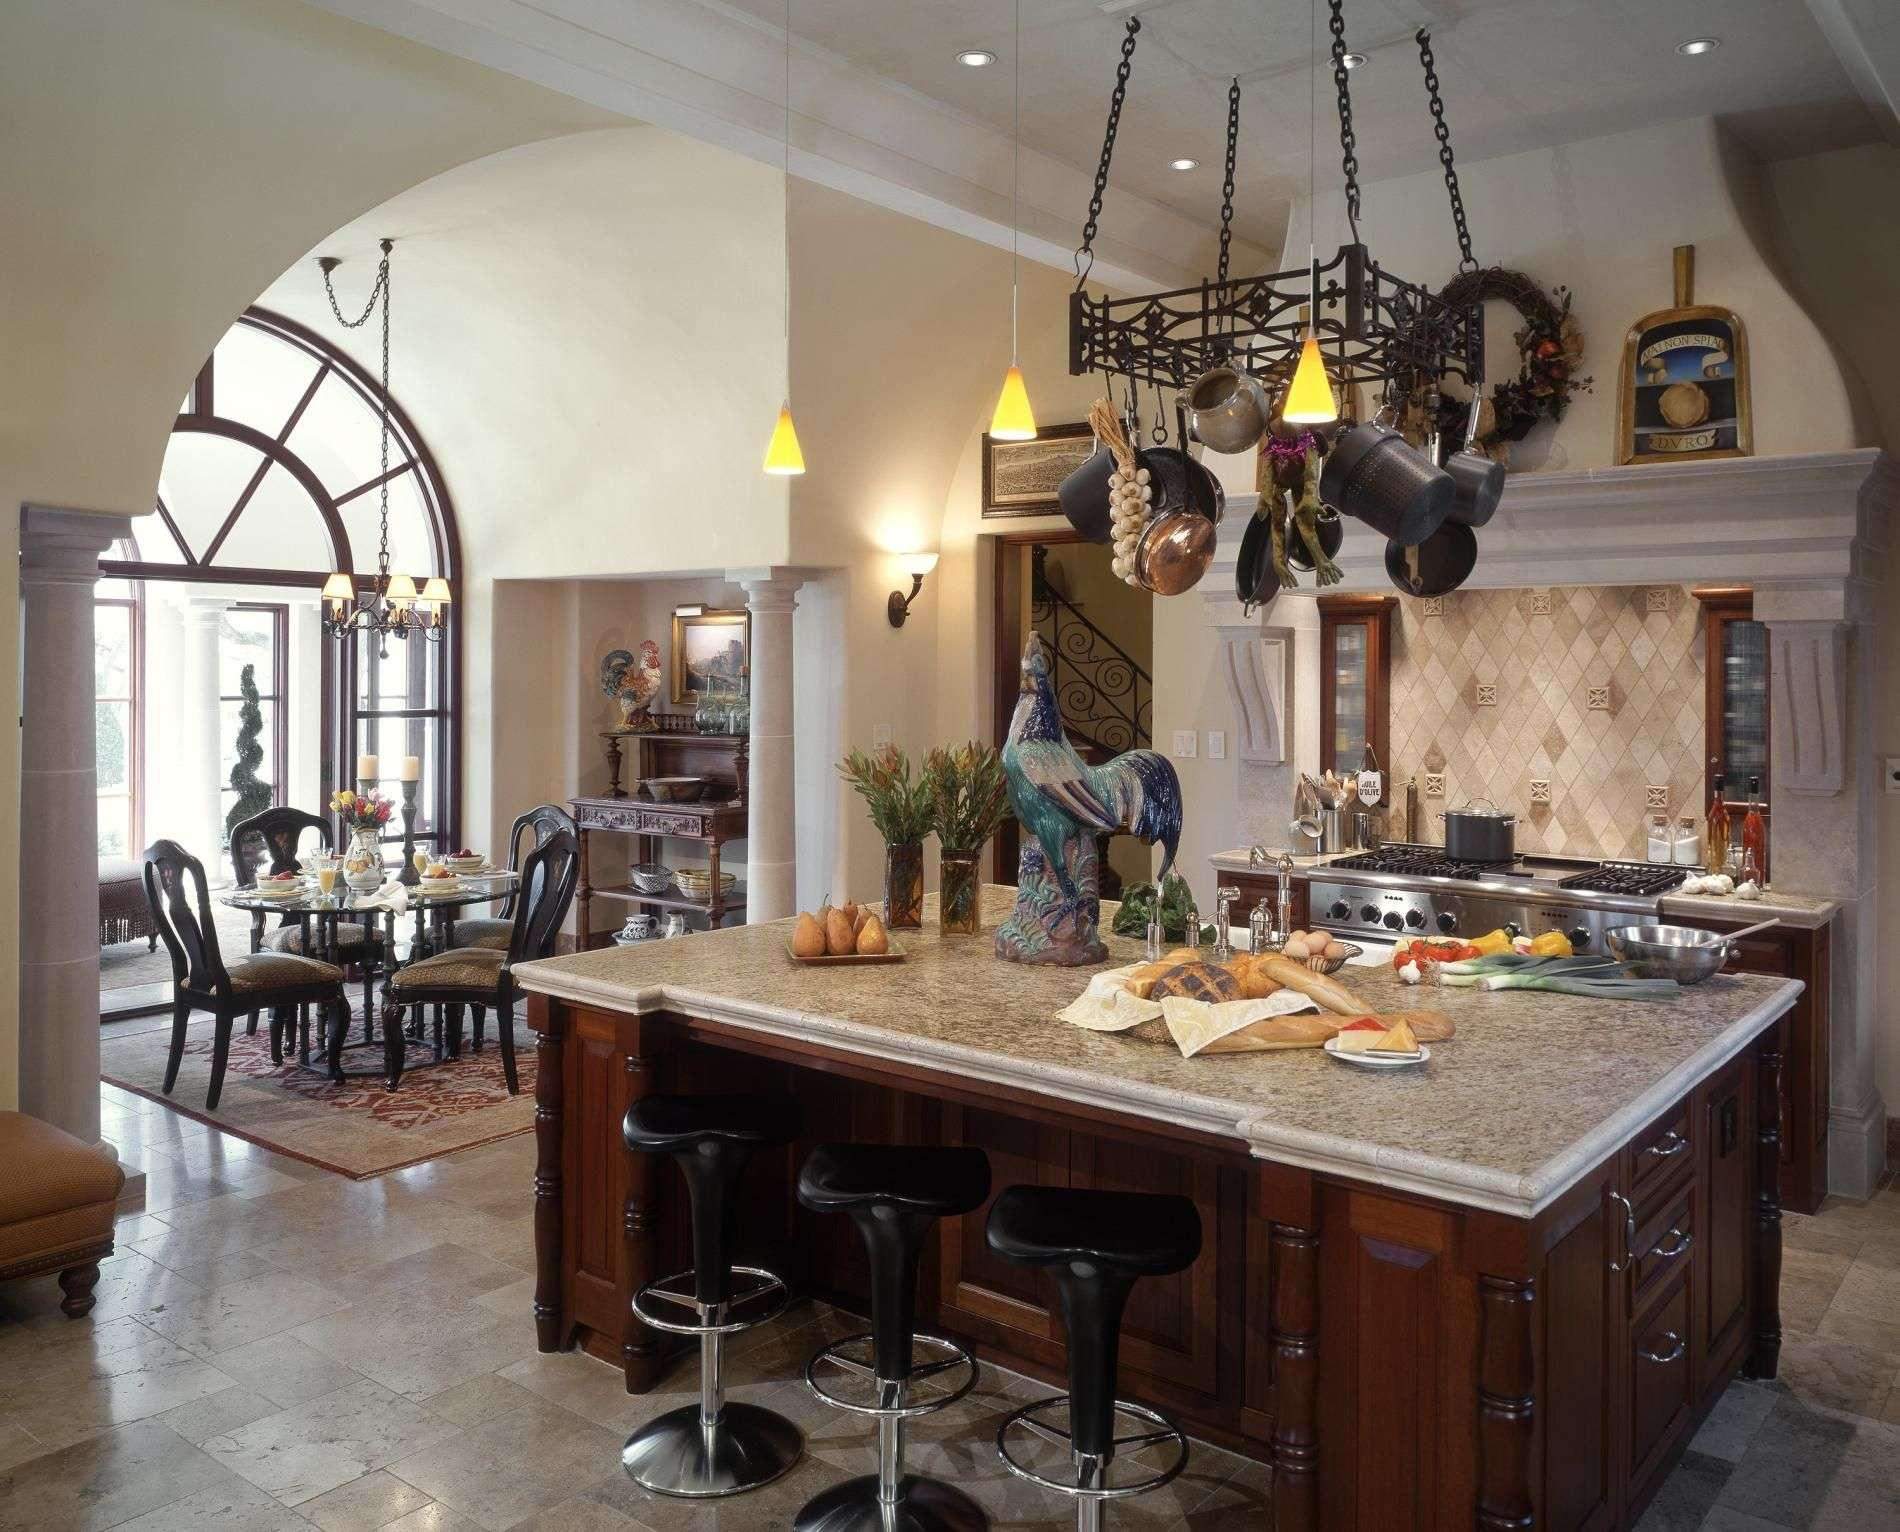 Image of: Awesome Rustic Italian Kitchen